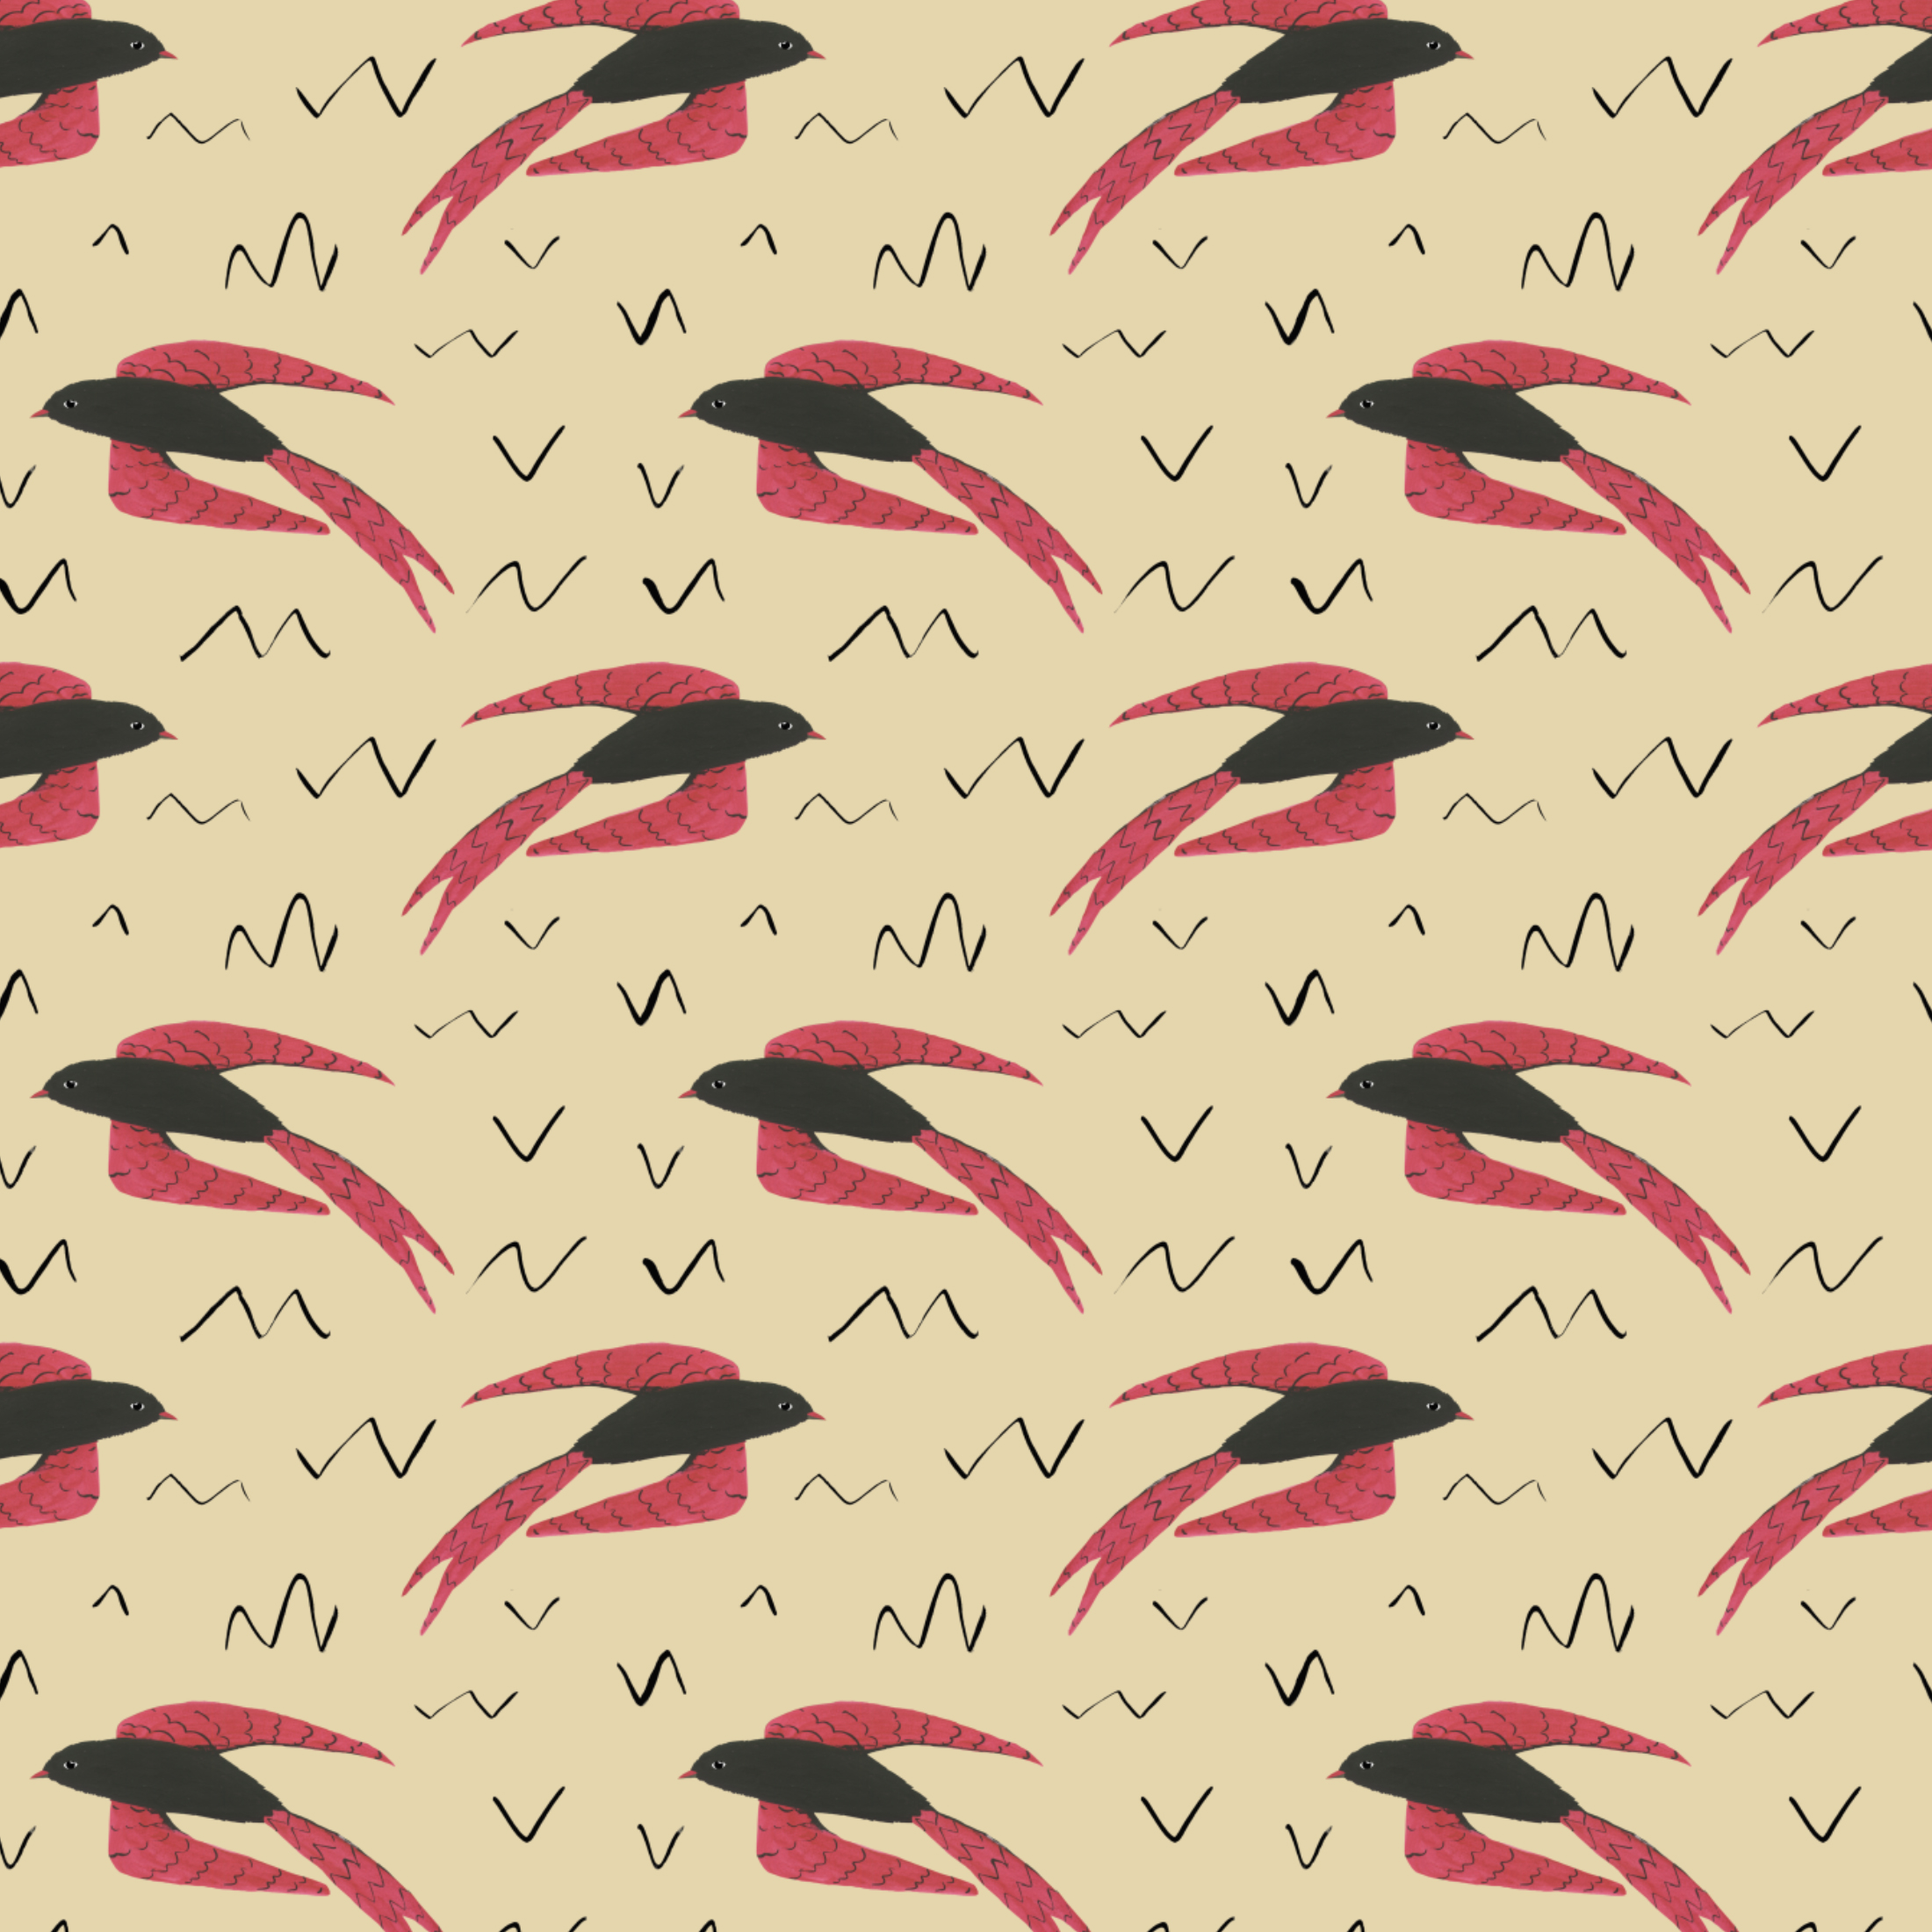 bird and scribbles pattern